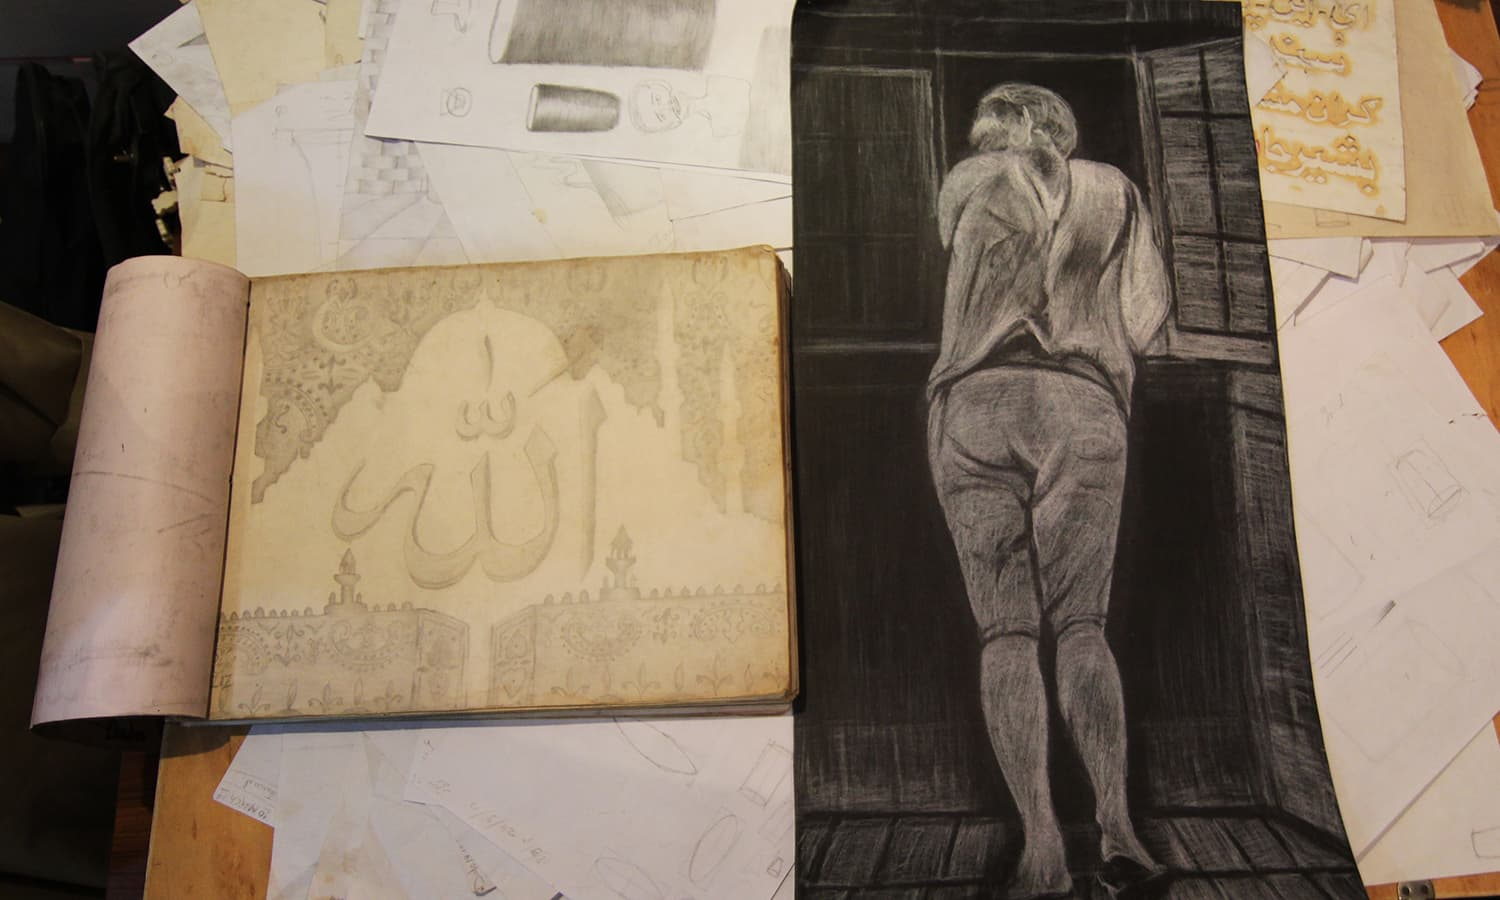 Students of the art school indulge in all forms of artwork, including painting, relief work and sketching. Many pieces from the artwork has been exhibited at Alliance Francaise and Citi Art gallery. Money earned from the sale of the artwork is distributed amongst the prisoners who then spend it on art equipment.